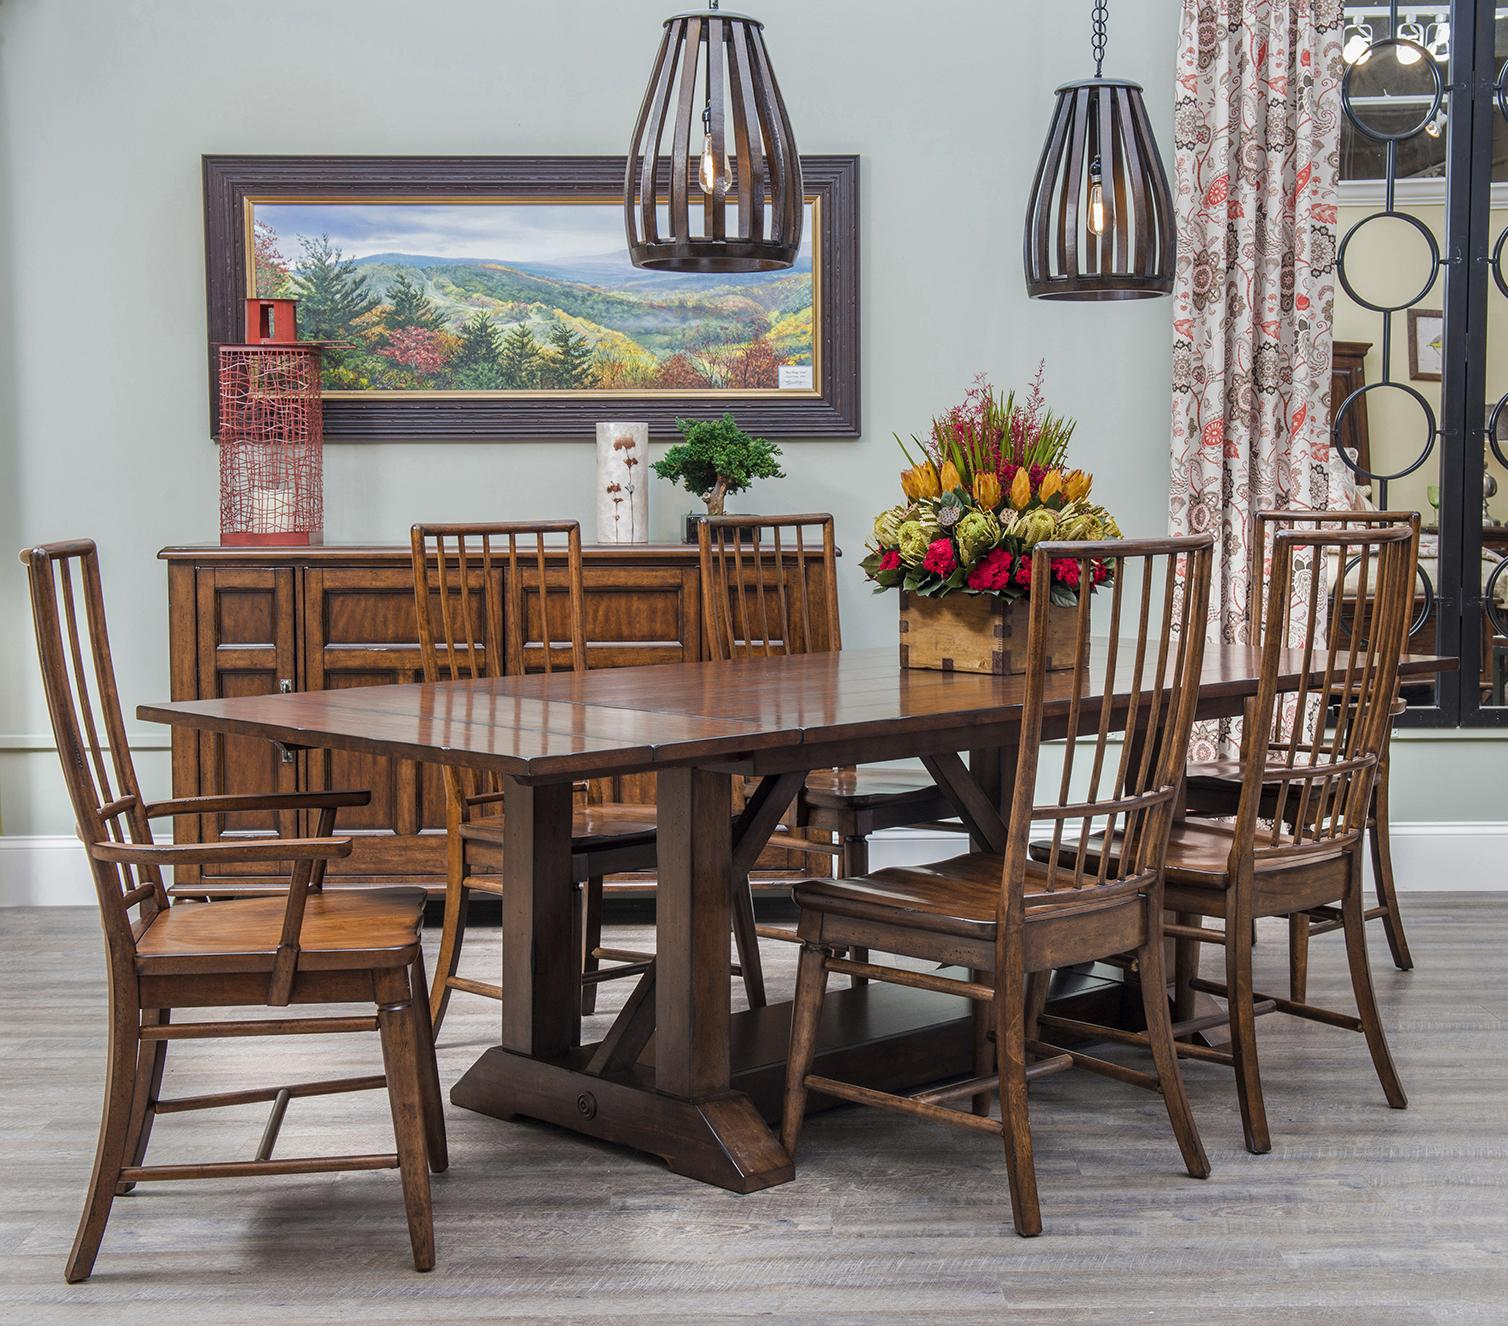 Easton Collection Blue Ridge 7 Piece Table and Chair Set - Item Number: 426-096 DRT+2x905 DRC+4x900 DRC